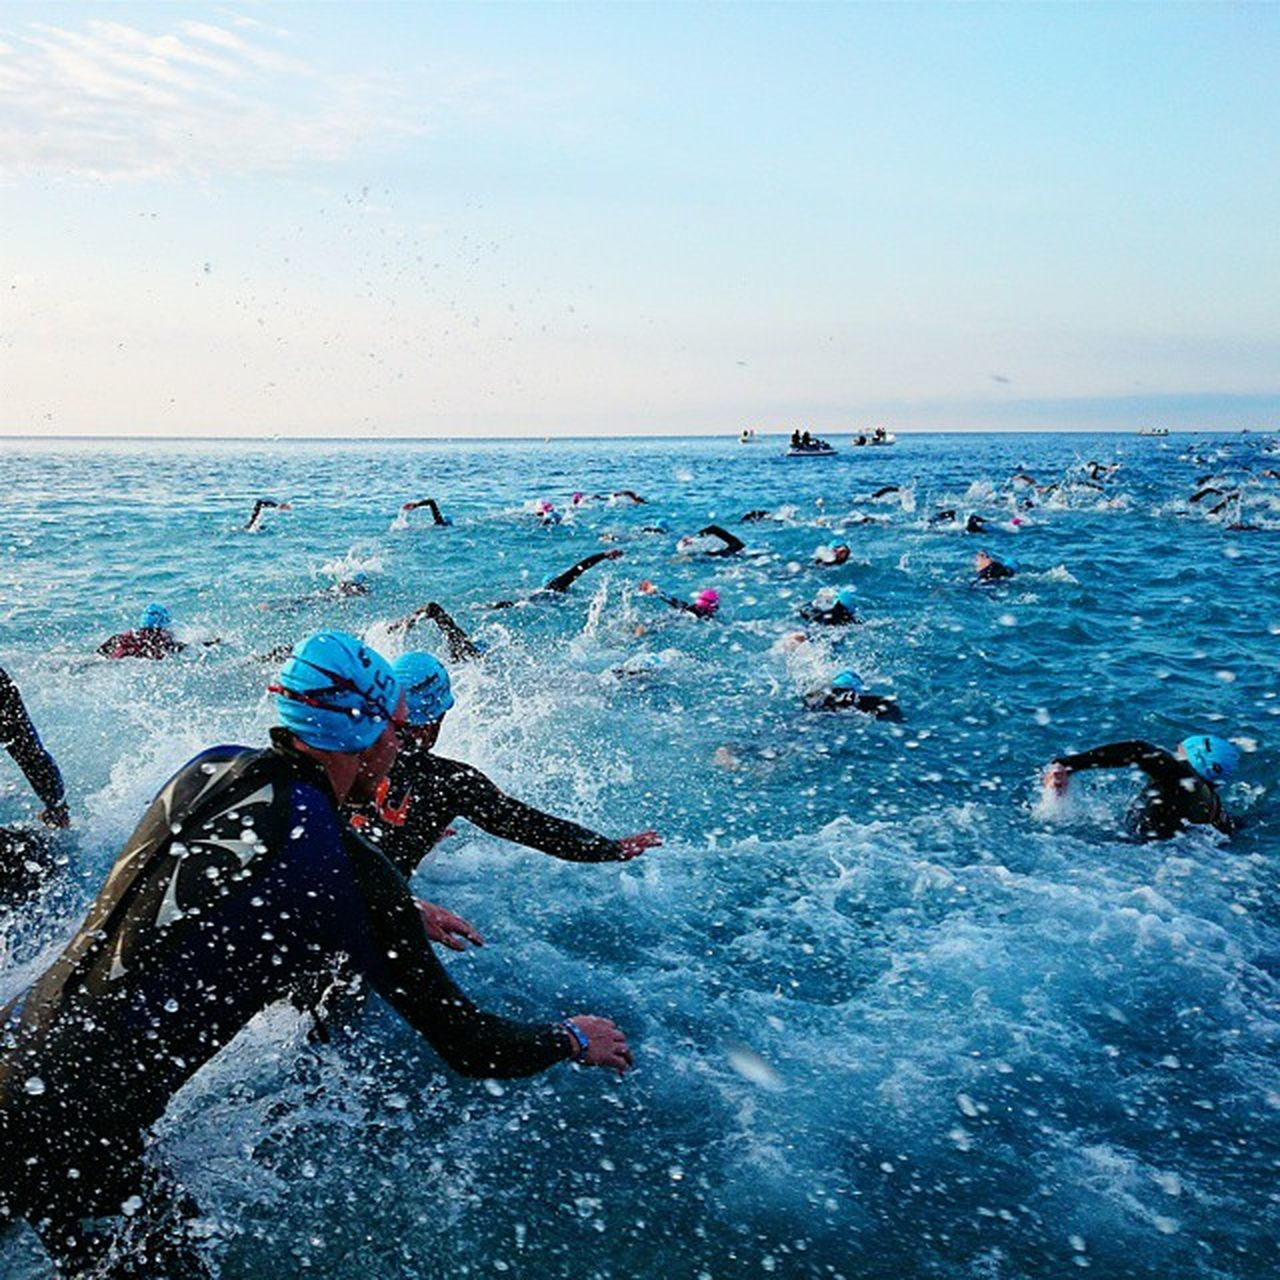 Splash ? Ironman Imnice Triathlonstore Ironmanfrance triathlon swim swimbikerun